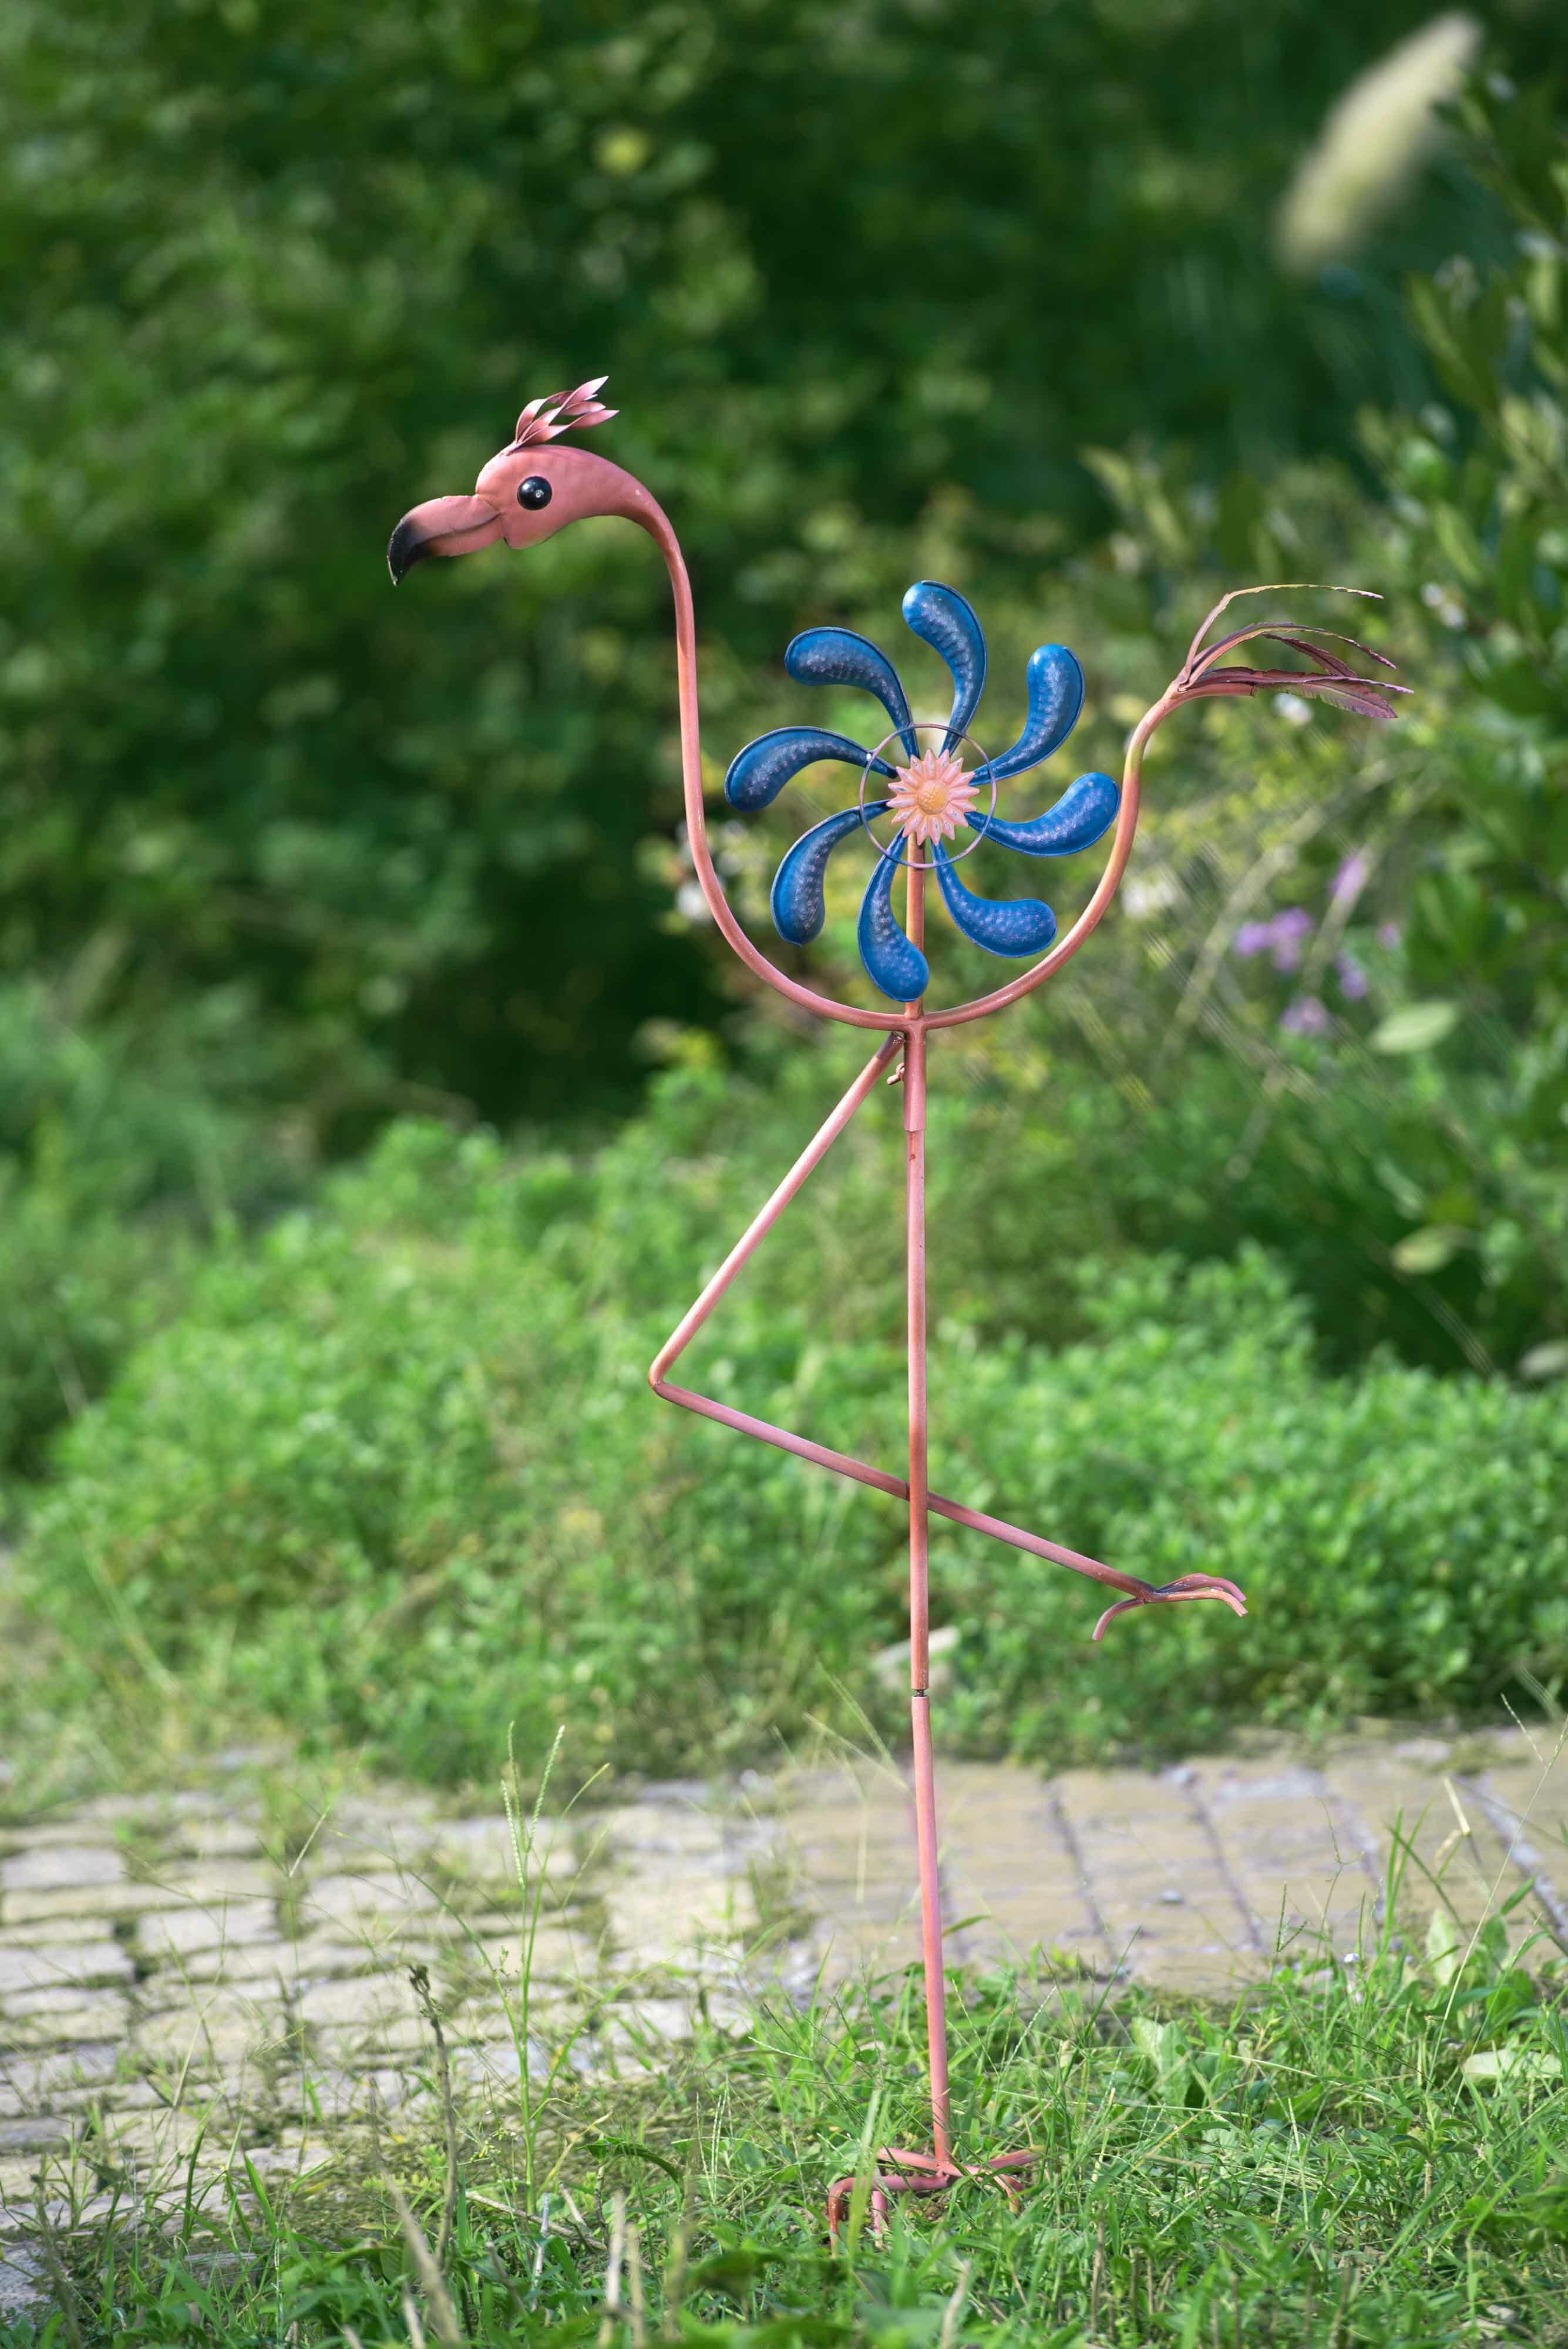 handmade pin flamingo stake flags decoration iron garden philippines pink